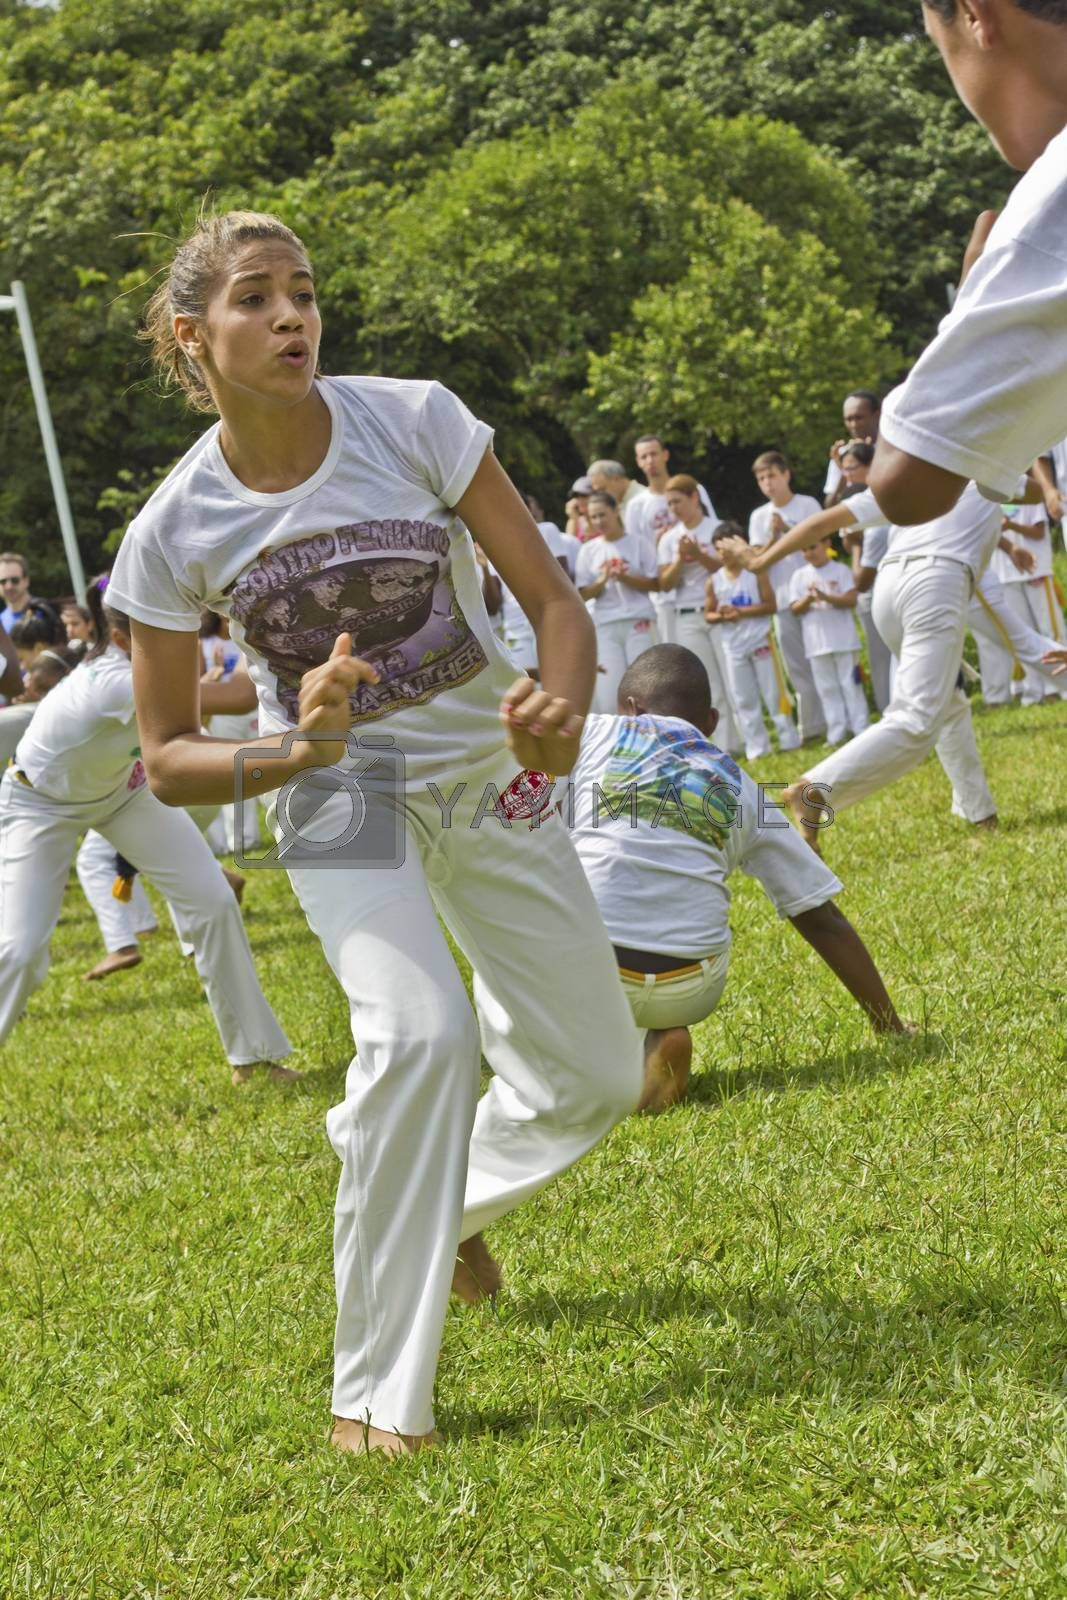 SAO PAULO, BRAZIL - FEBRUARY 01, 2015: An unidentified girl fights capoeira in a circle of people with traditional samba music on the grass of Ibirapuera Park at Sao Paulo Brazil.